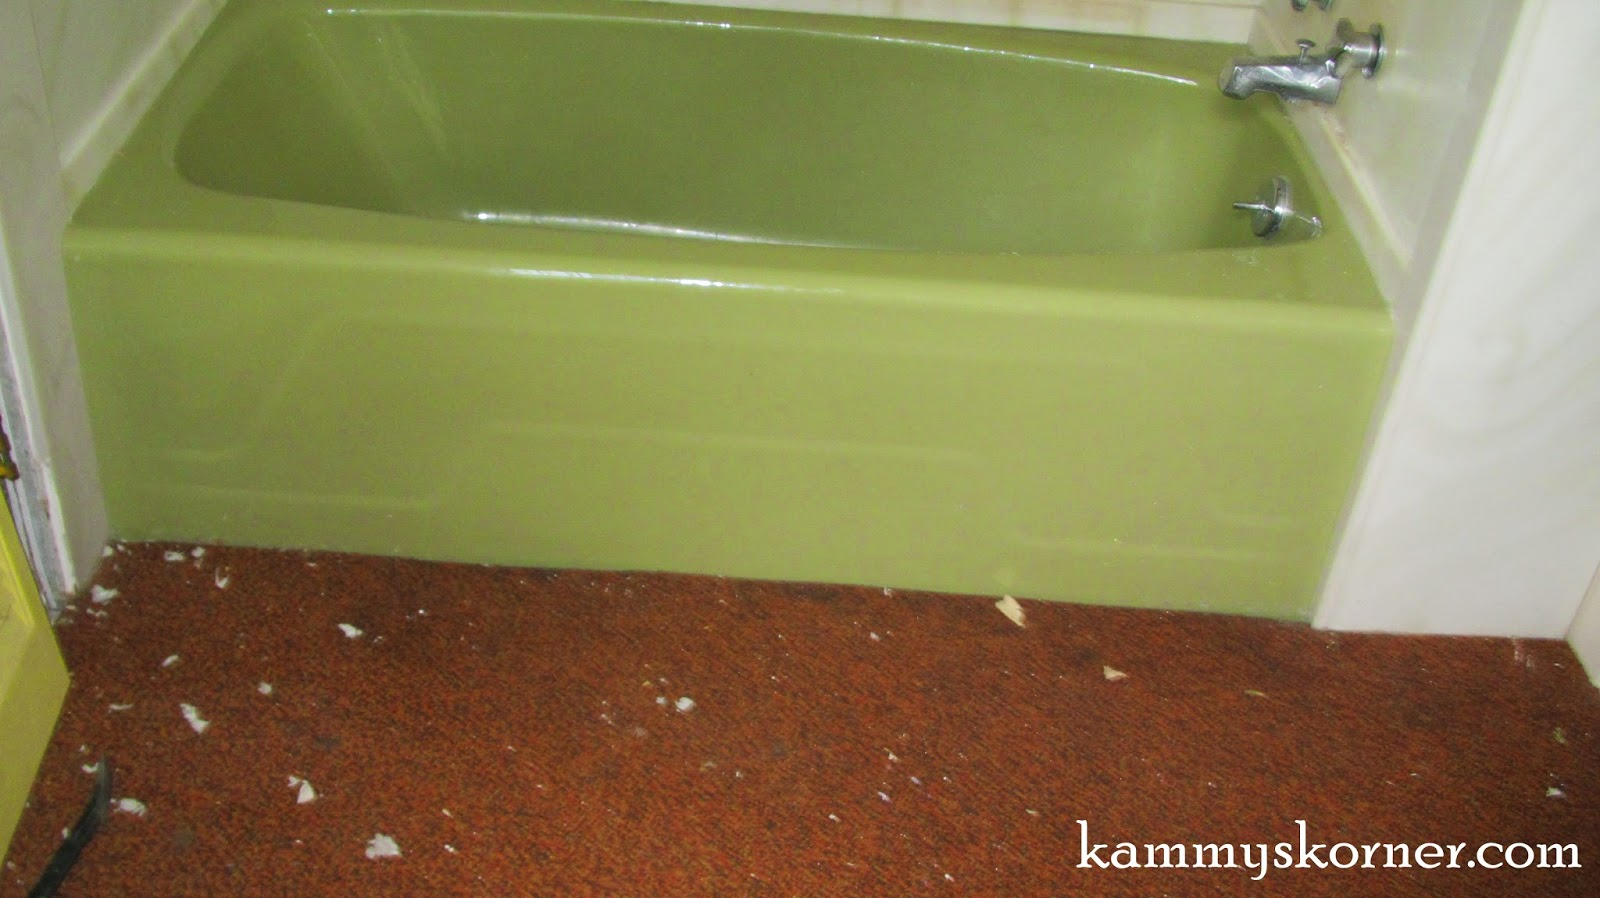 Rockinu0027 The Avocado Green Bathtub (For Now!!)